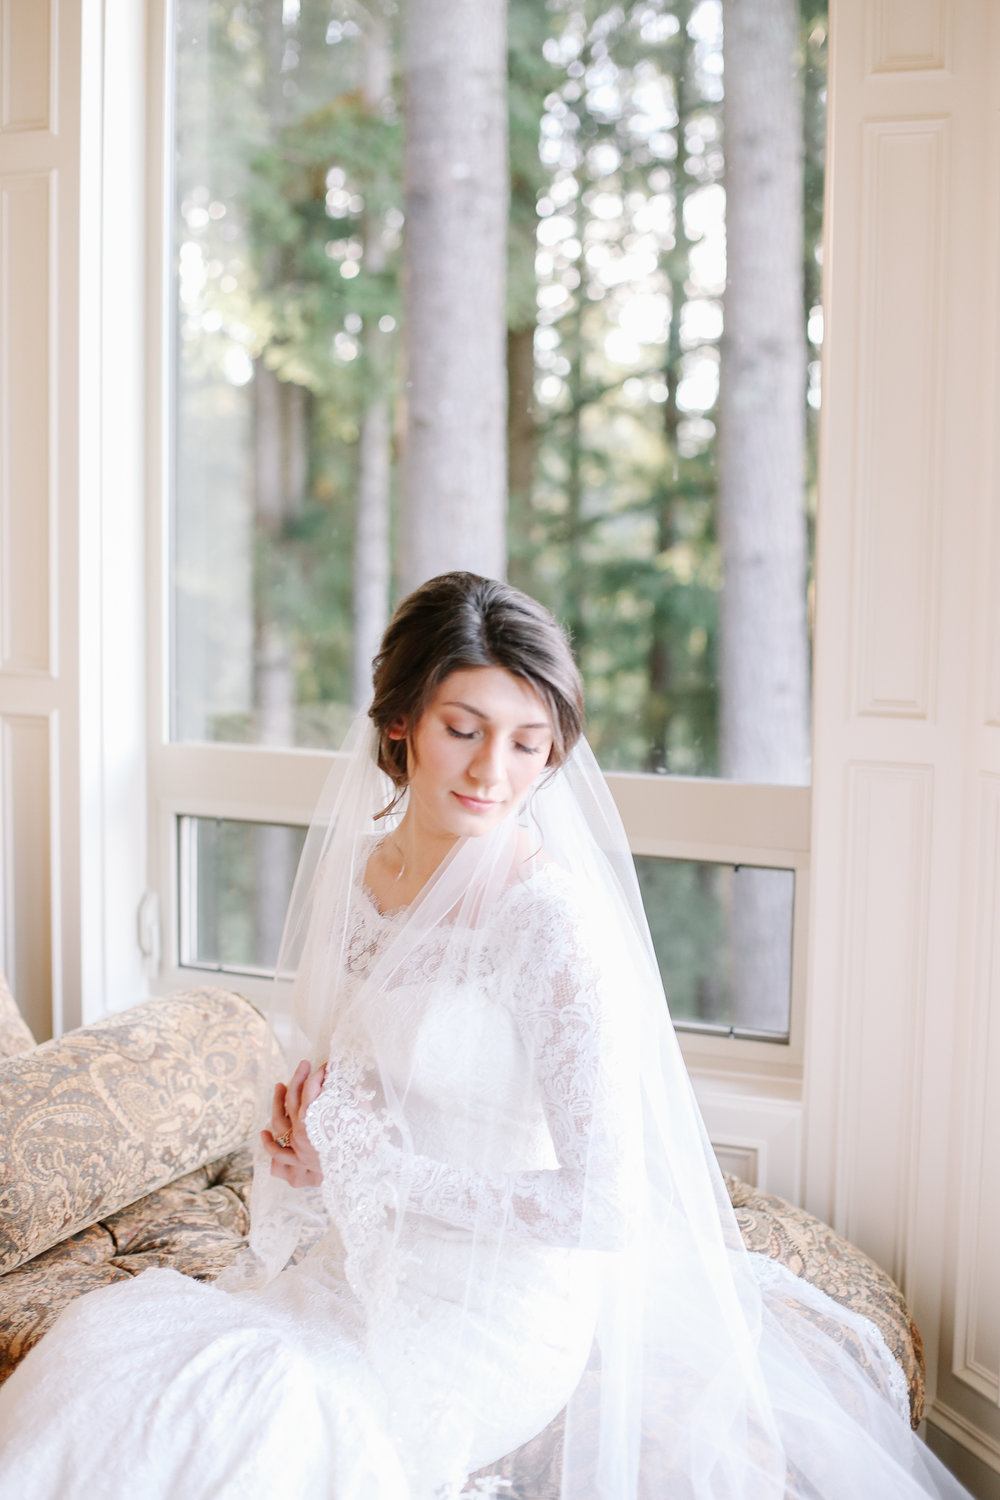 Manu and Laura - Portland Wedding Photographer - 11.jpg